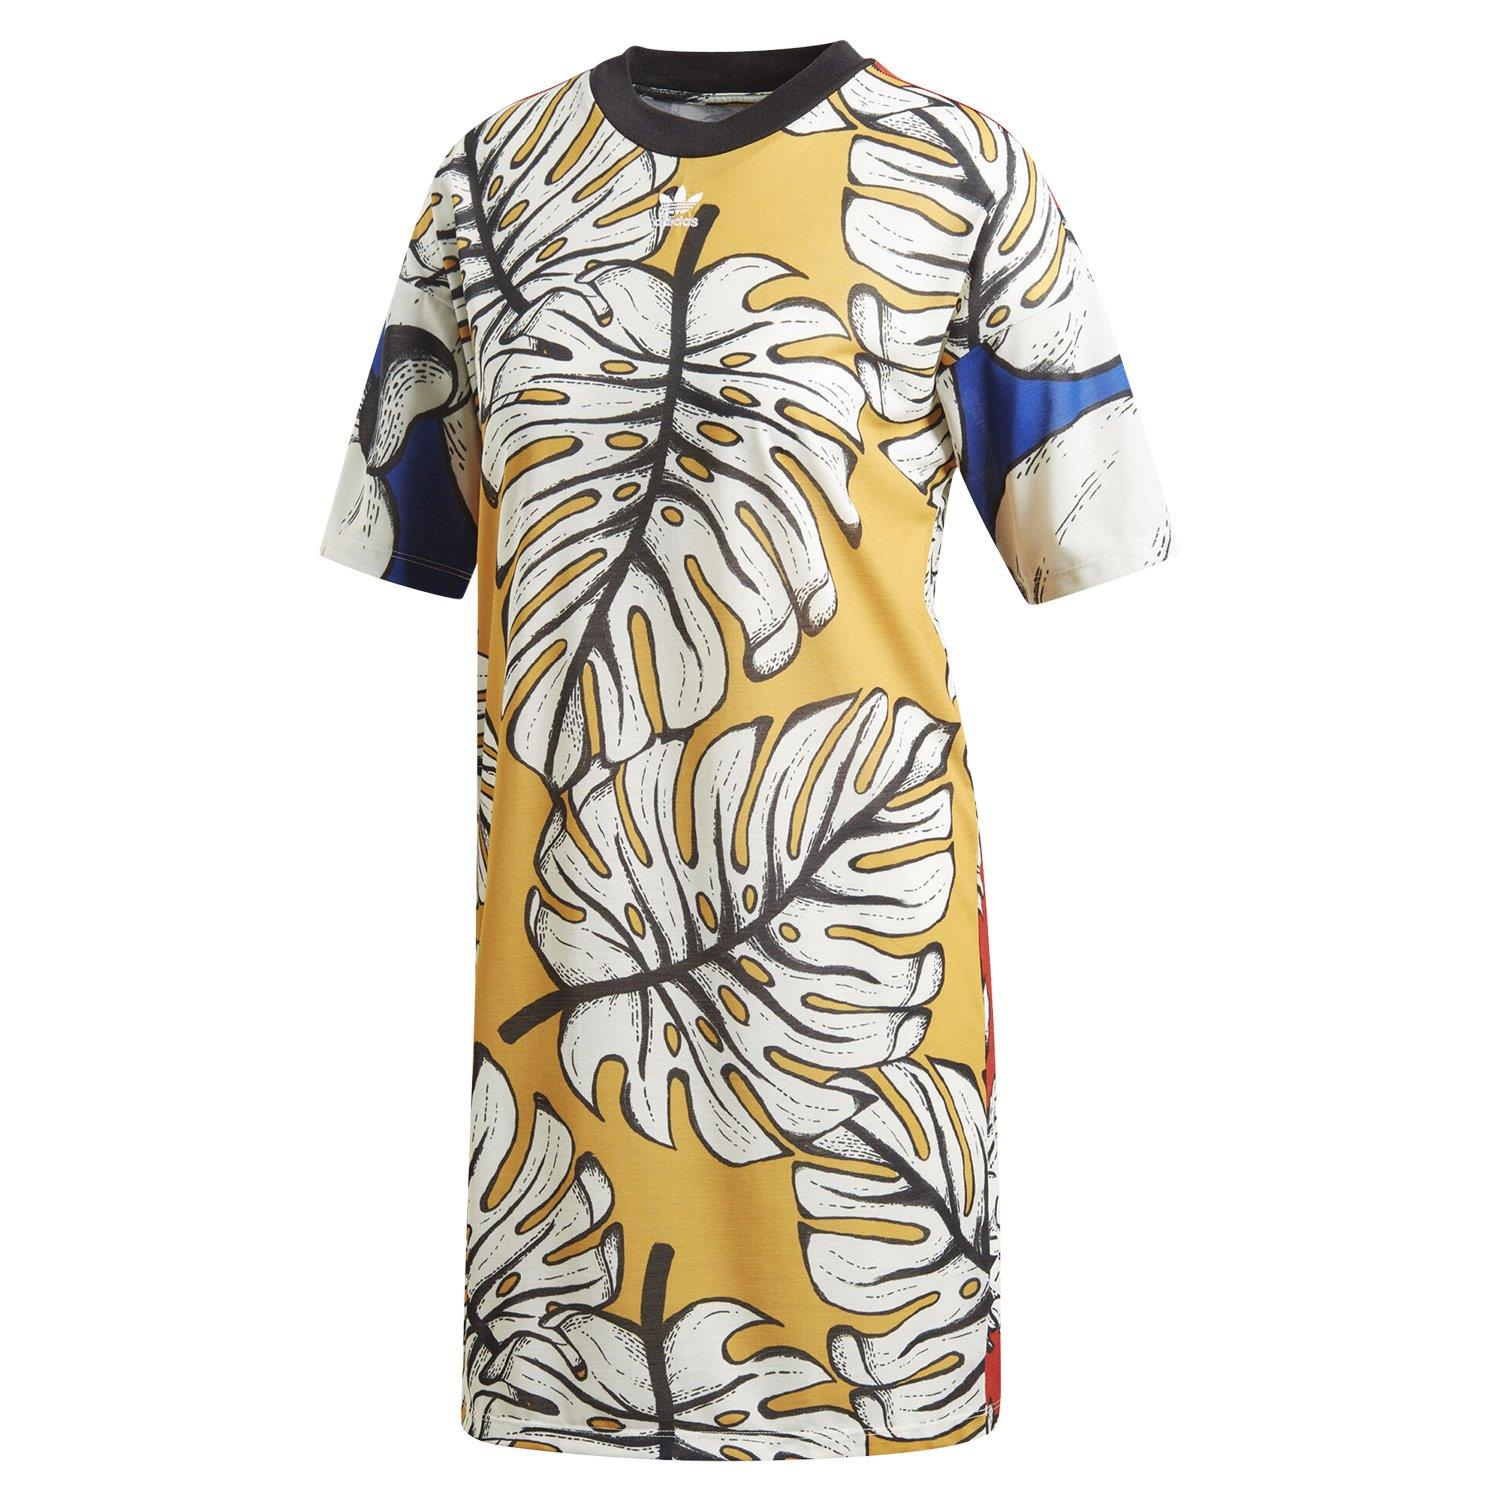 Details about adidas ORIGINALS X FARM WOMEN'S GRAPHIC TEE DRESS FRUIT DEADSTOCK RARE CASUAL